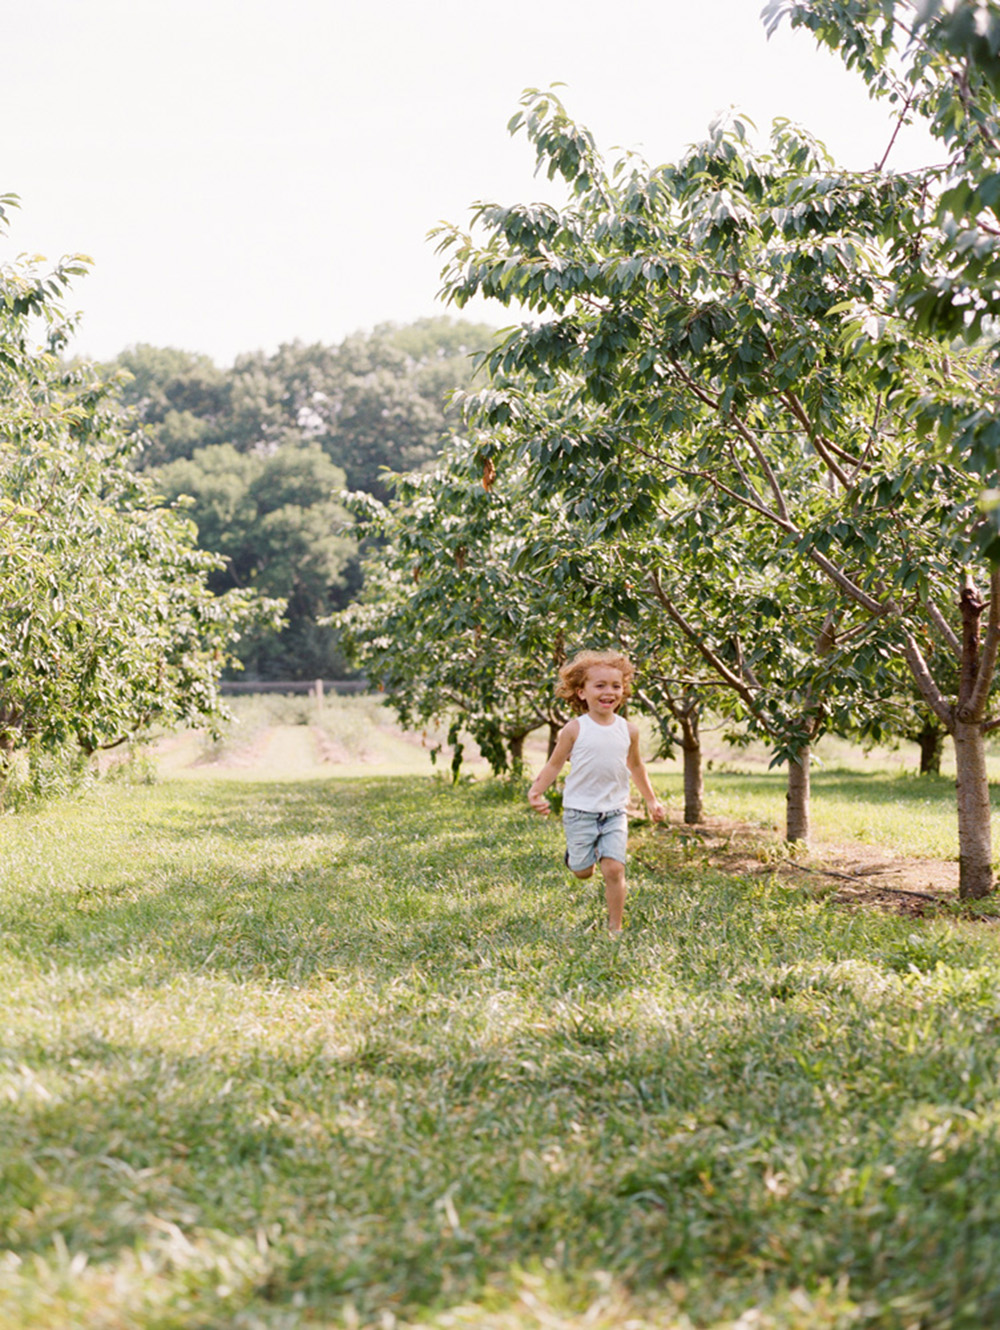 amy_rae_photography_solebury_orchards_family_lifestyle_photography_bucks_county_pa_069.jpg